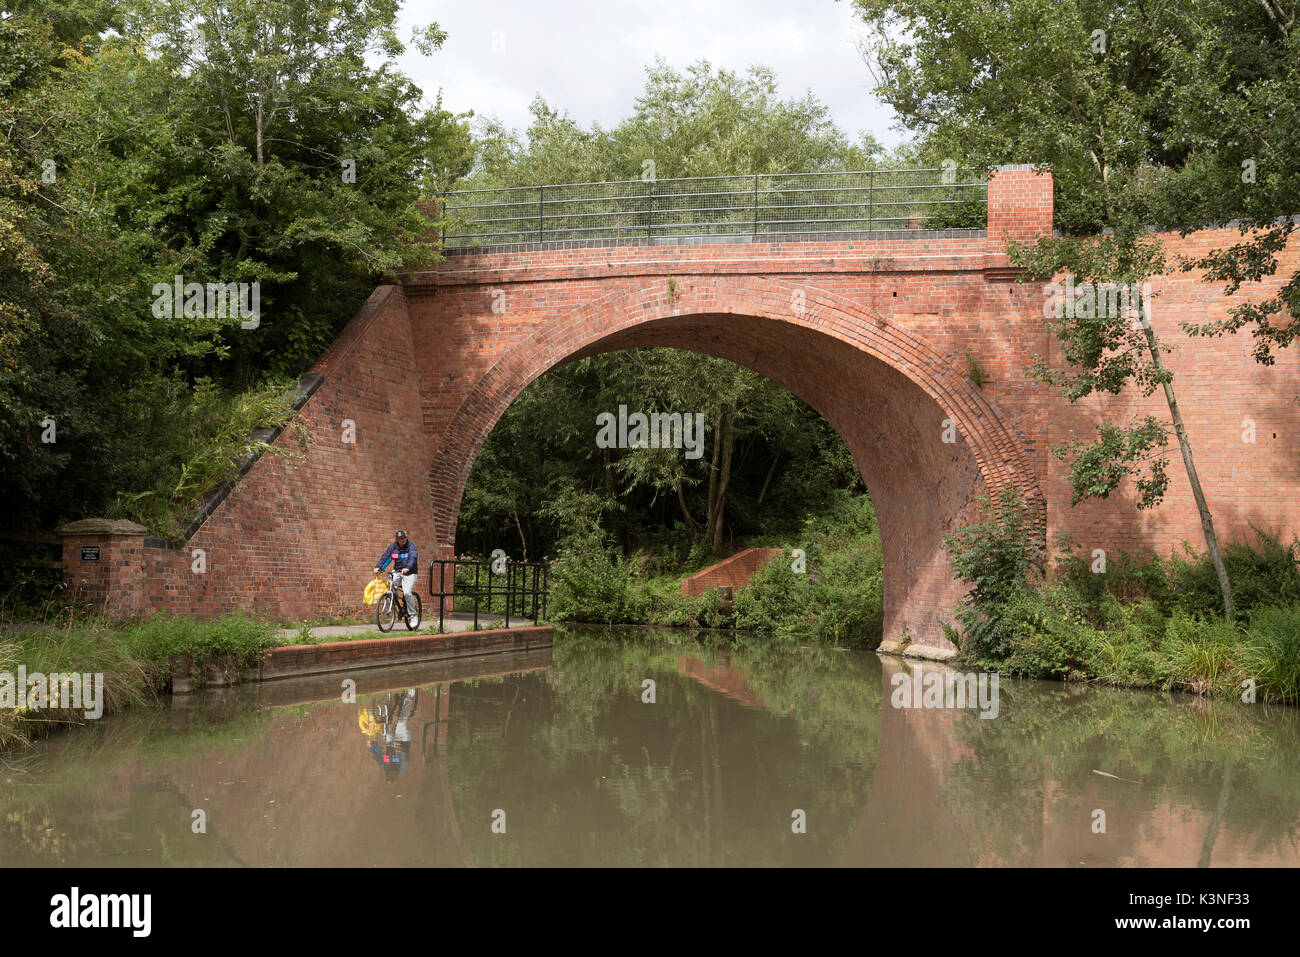 Beavan's Bridge at Westleaze Swindon UK. August 2017. Man riding a cycle on the towpath under the brick built bridge crossing the recently restored Wi - Stock Image